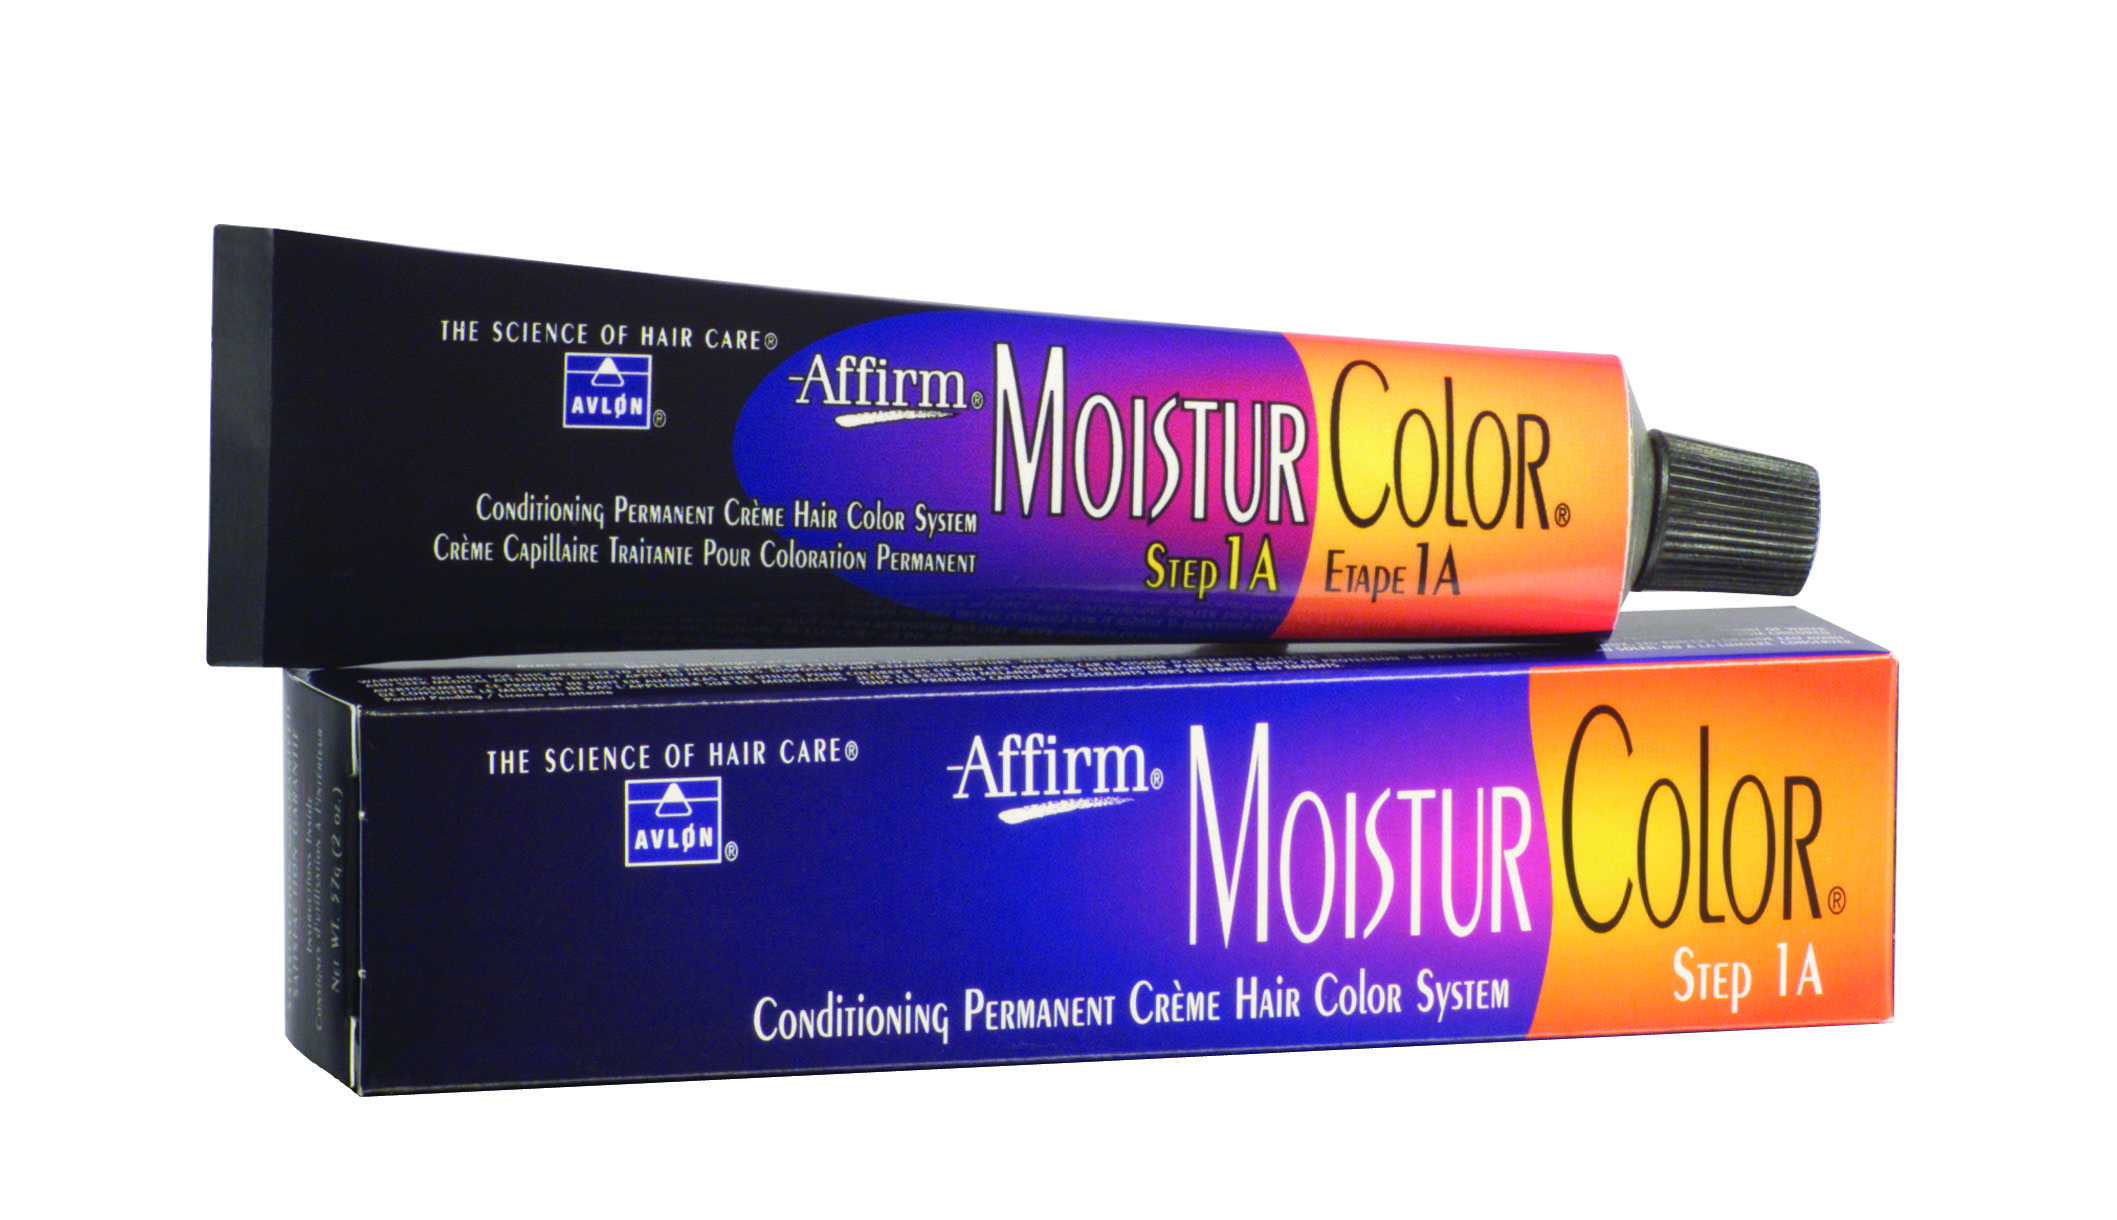 Moisturcolor Conditioning Creme Permanent Hair Color 8b Coolest